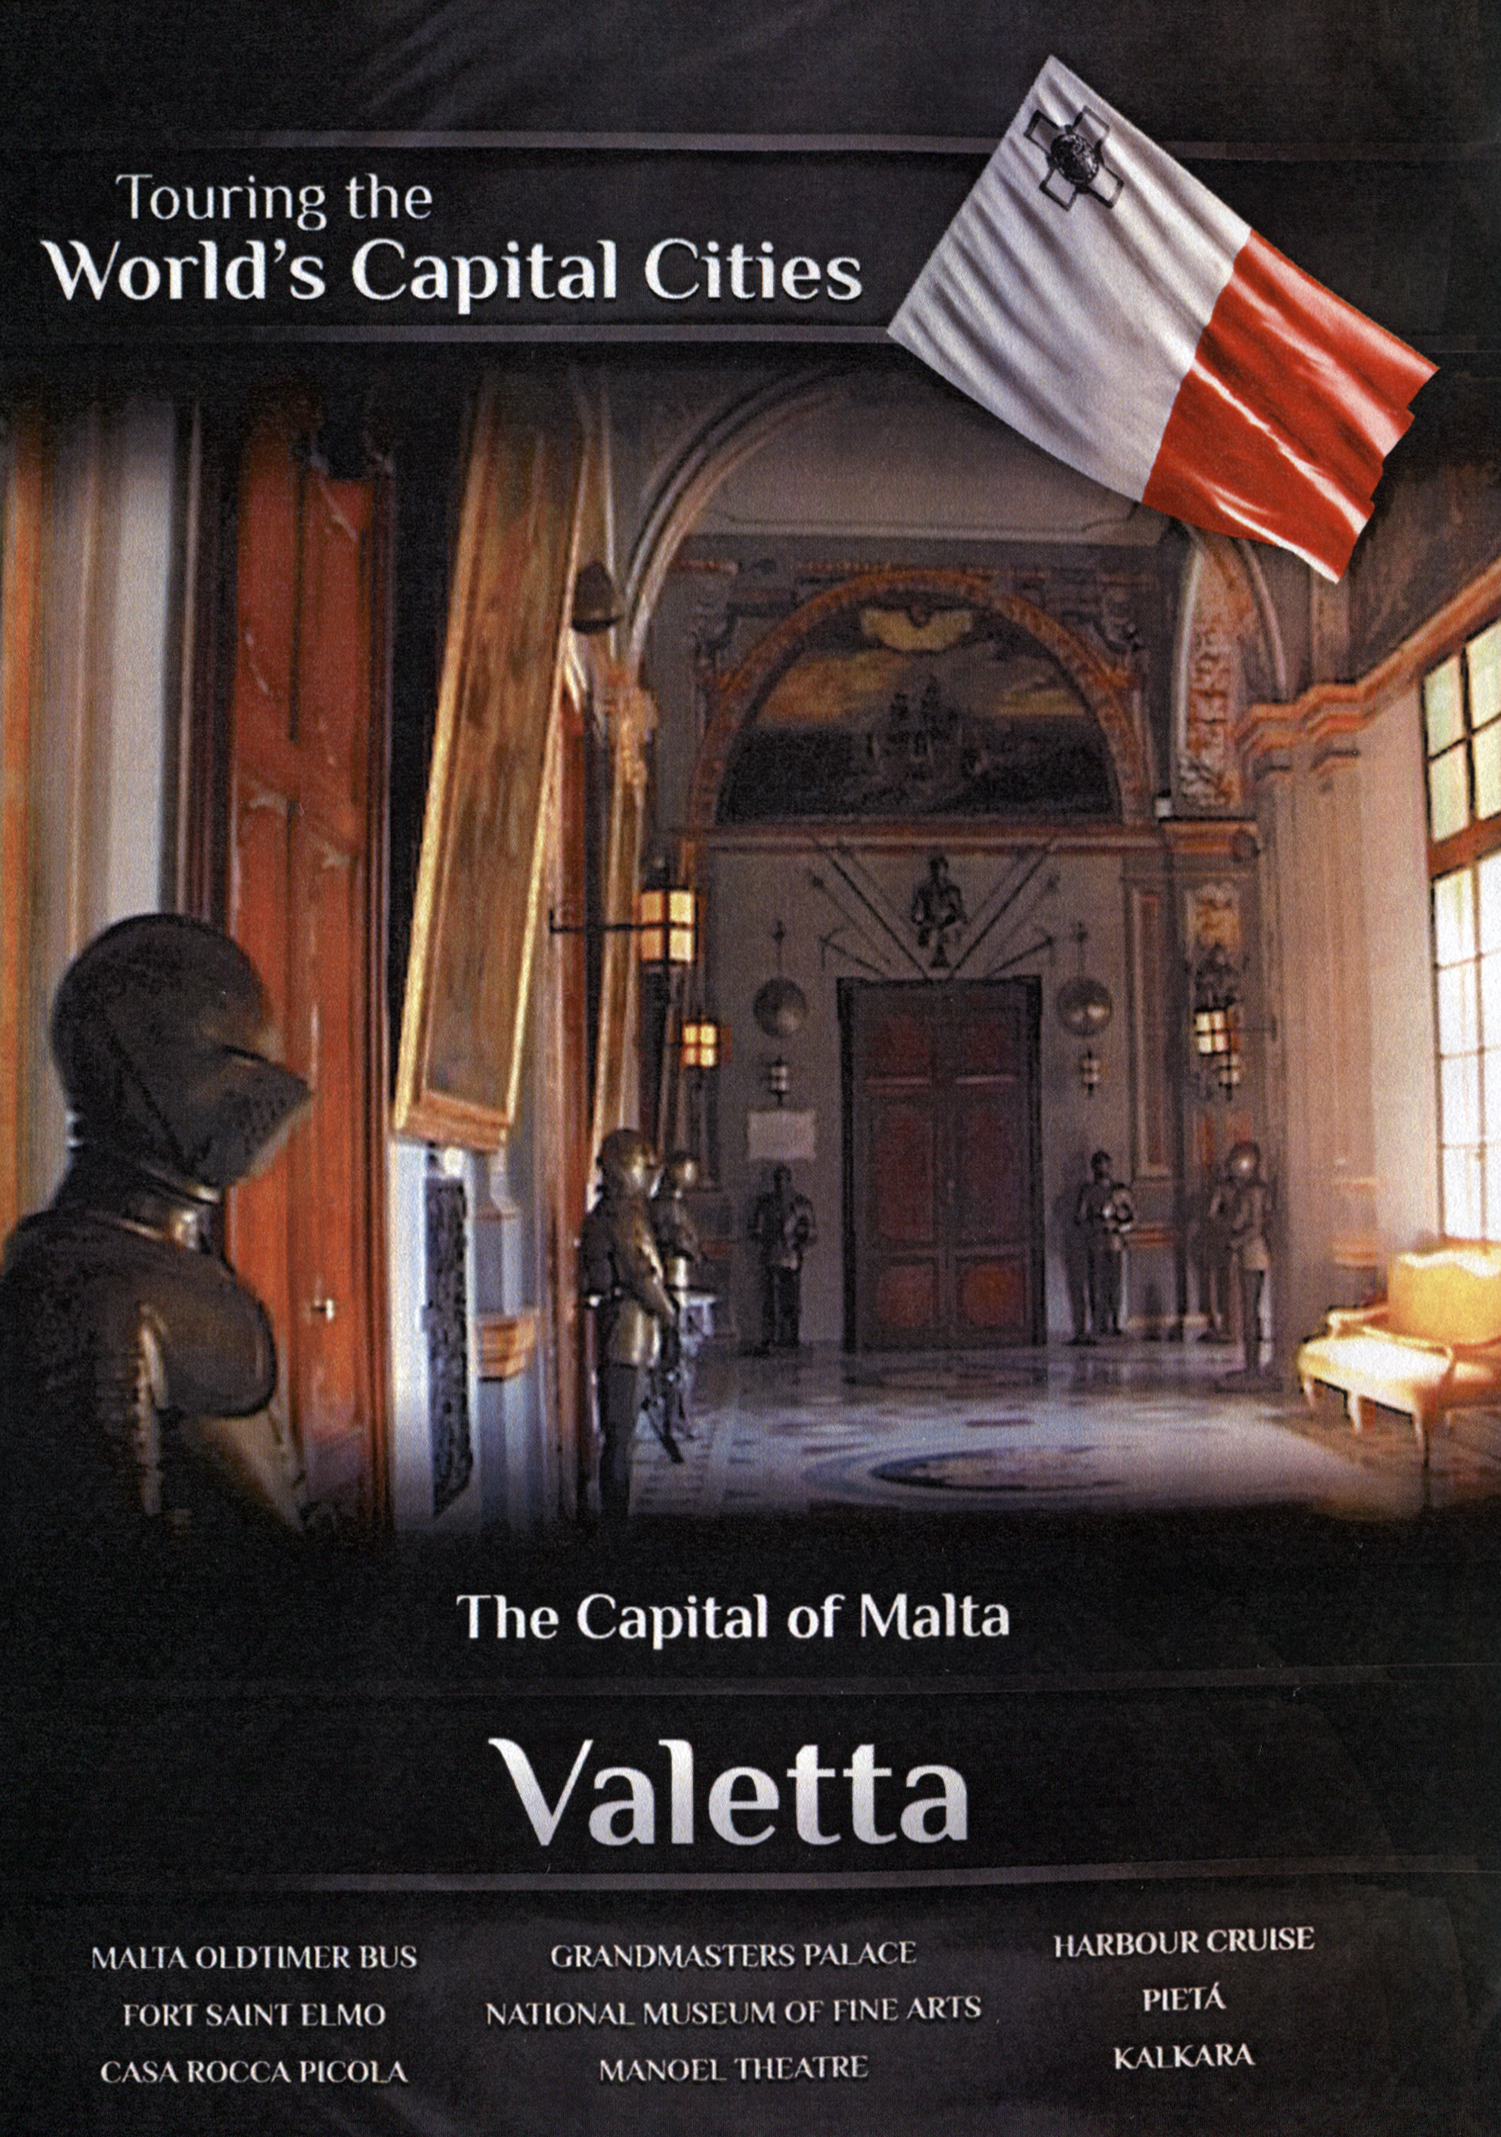 Touring the World's Capital Cities: The Capital of Malta - Valetta